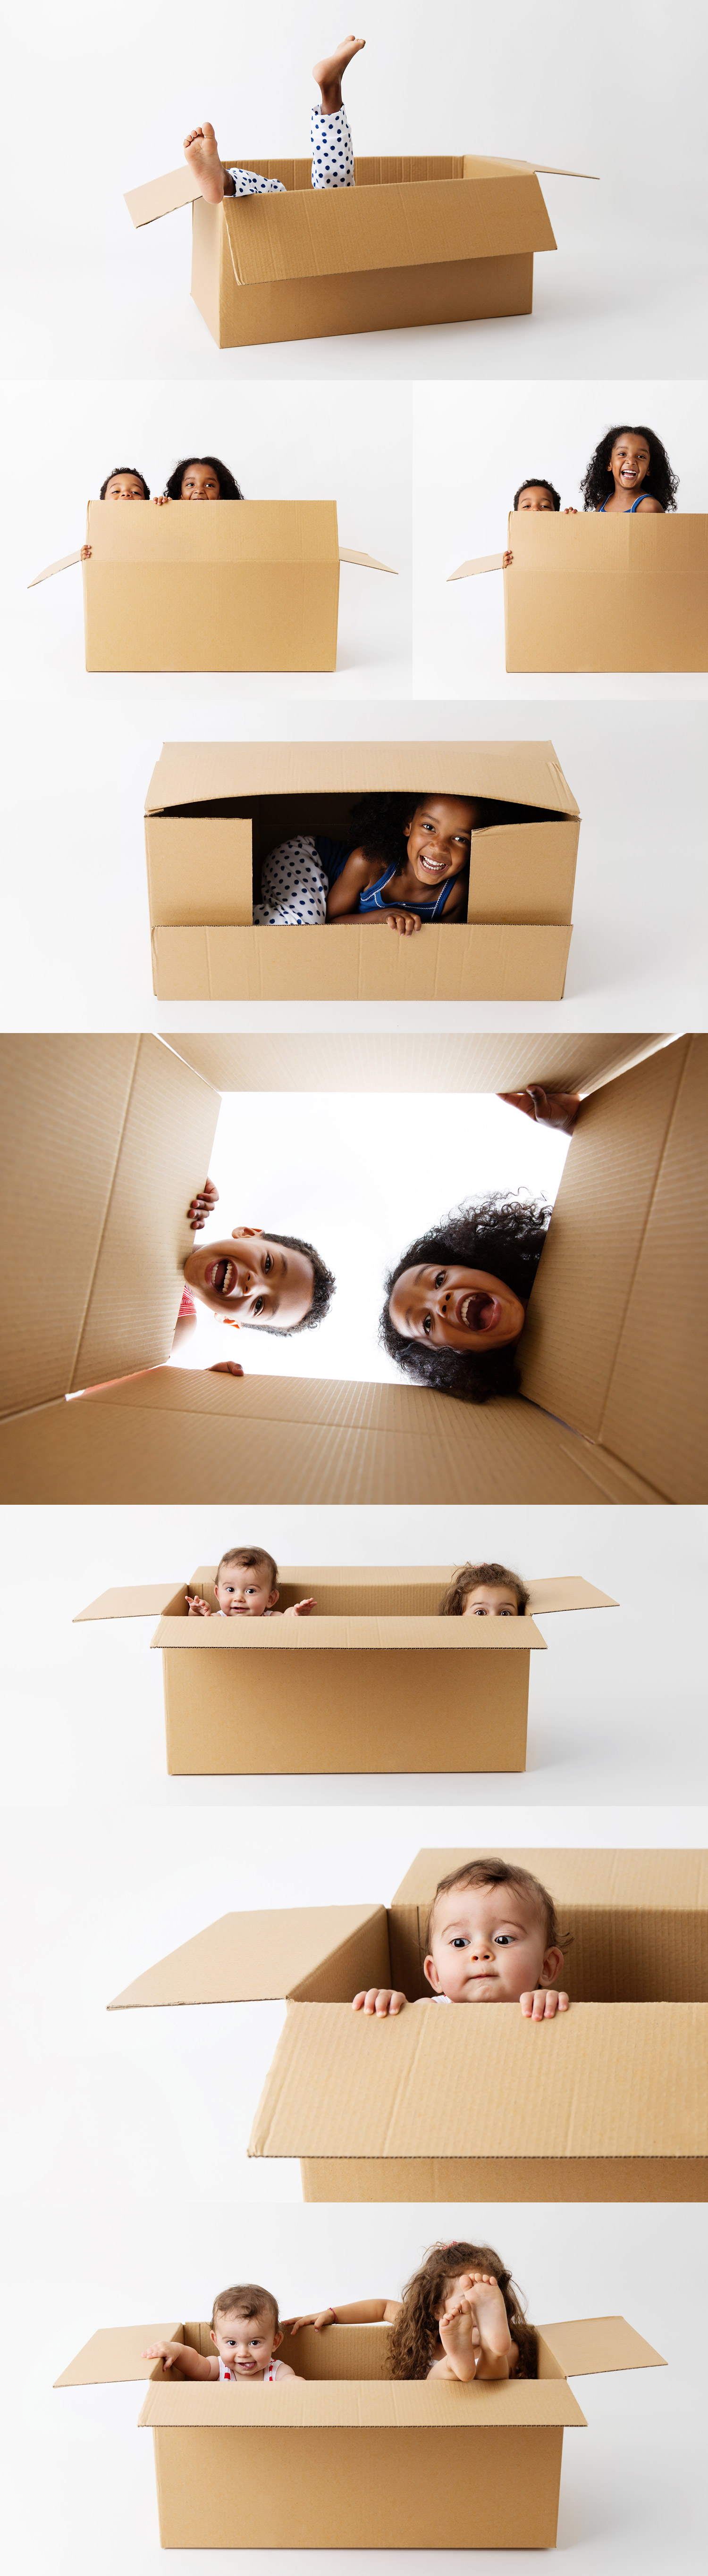 Children and babies having fun with cardboard boxes by commercial kids photographer Lisa Tichane